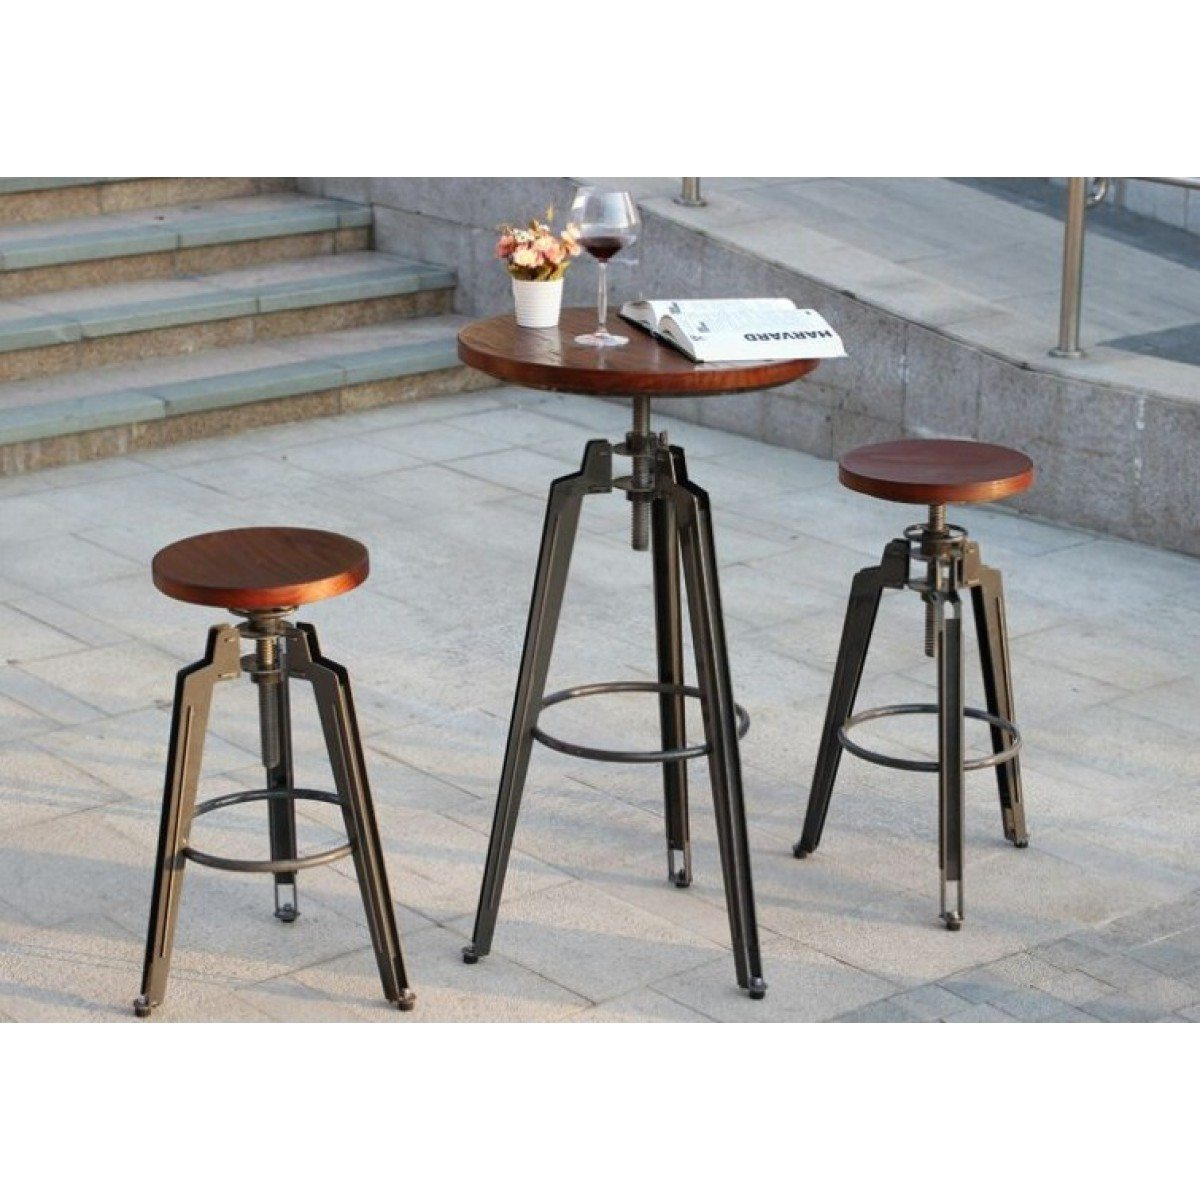 Picture of: Cafe Table And Stools Available Online Or In Store From Bimbo Adelaide